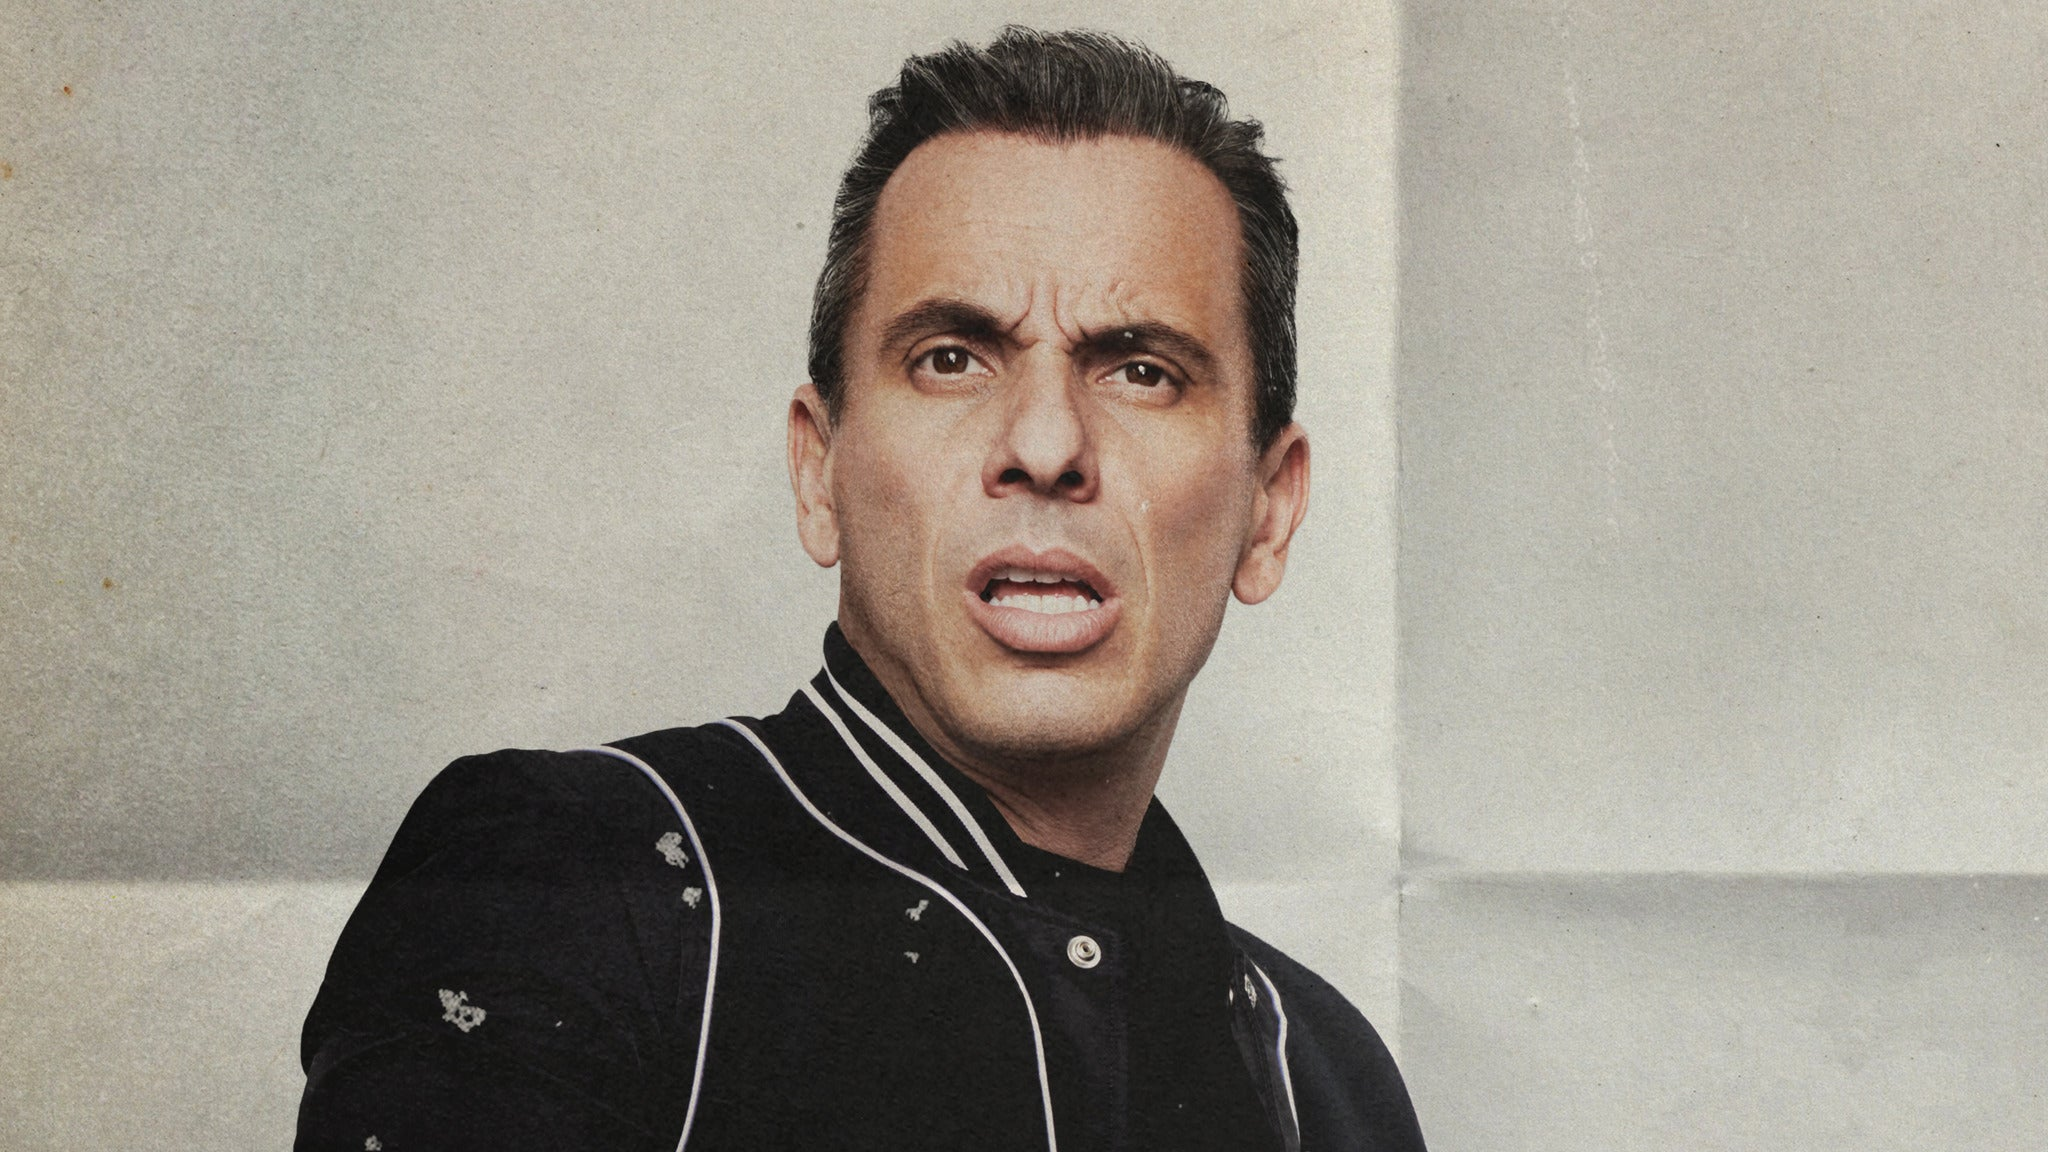 Sebastian Maniscalco at Route 66 Casino